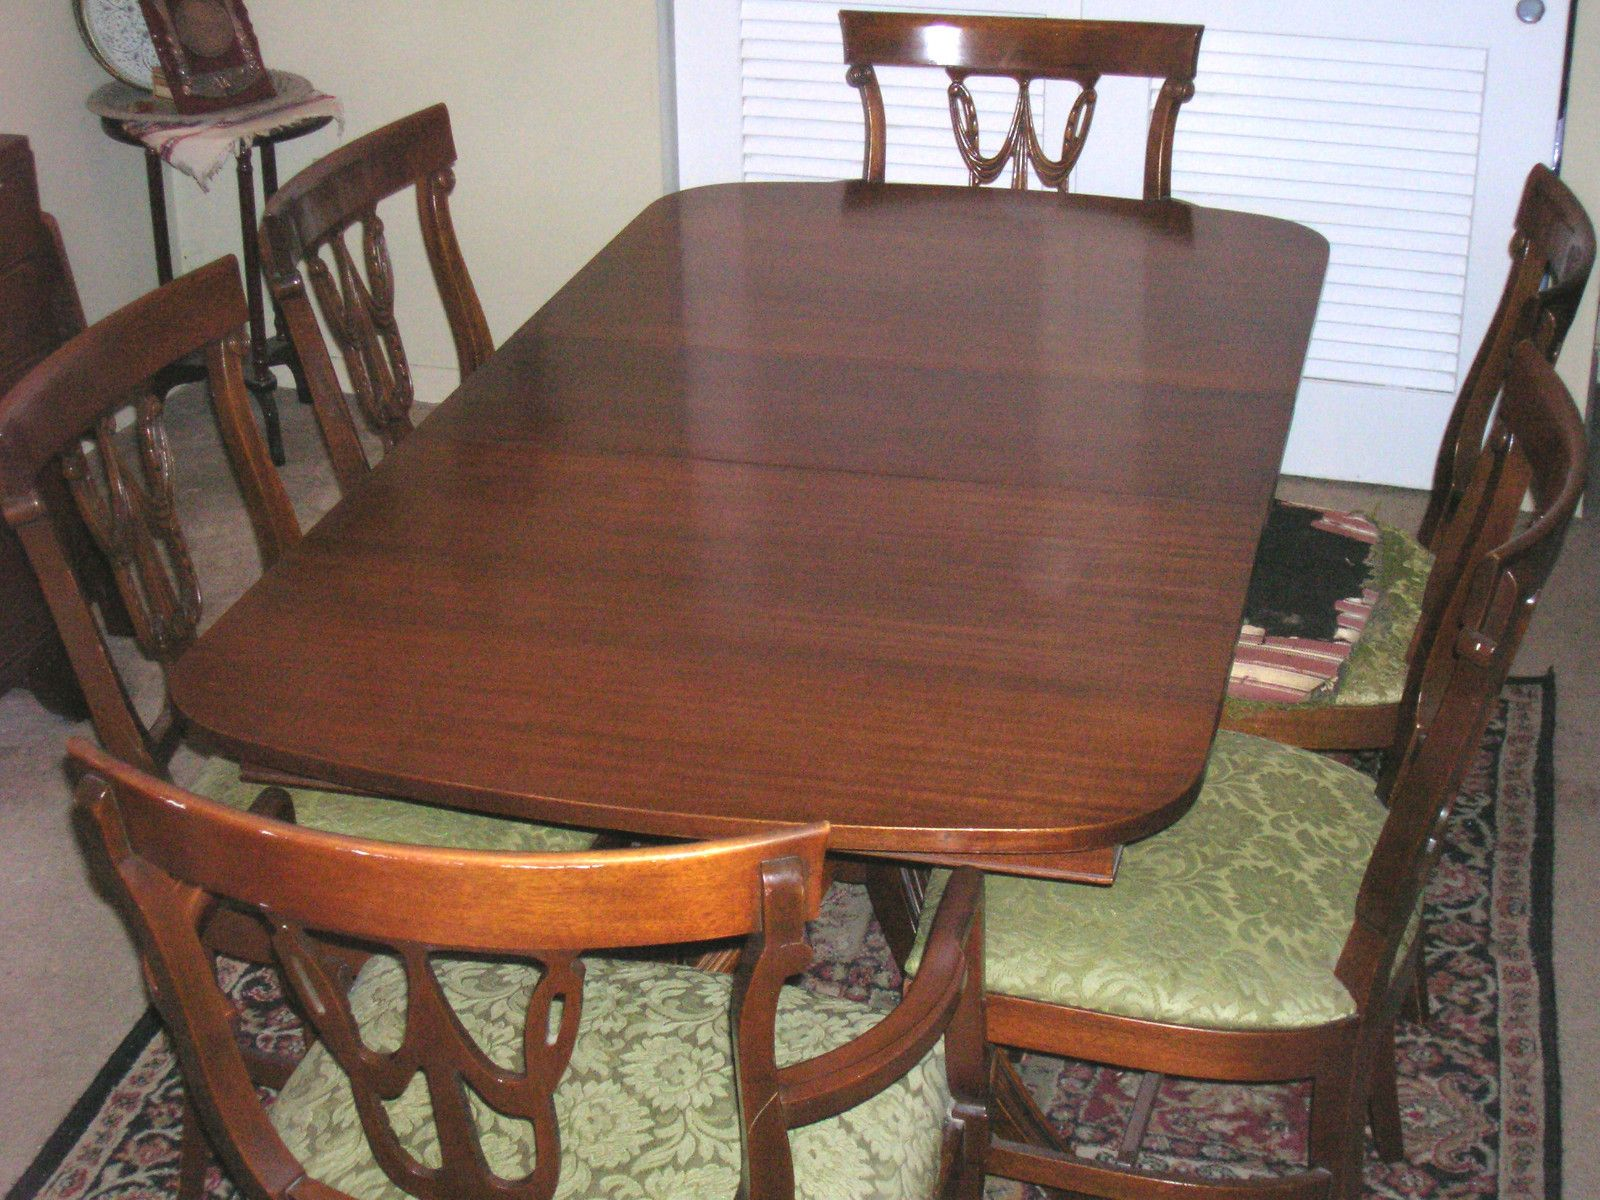 Antique Mahogany Table And 6 Chairs By Rway Furniture Co 1940 S 1950 S Ebay 150 Mahogany Table Grey Furniture Living Room Living Room Sets Furniture